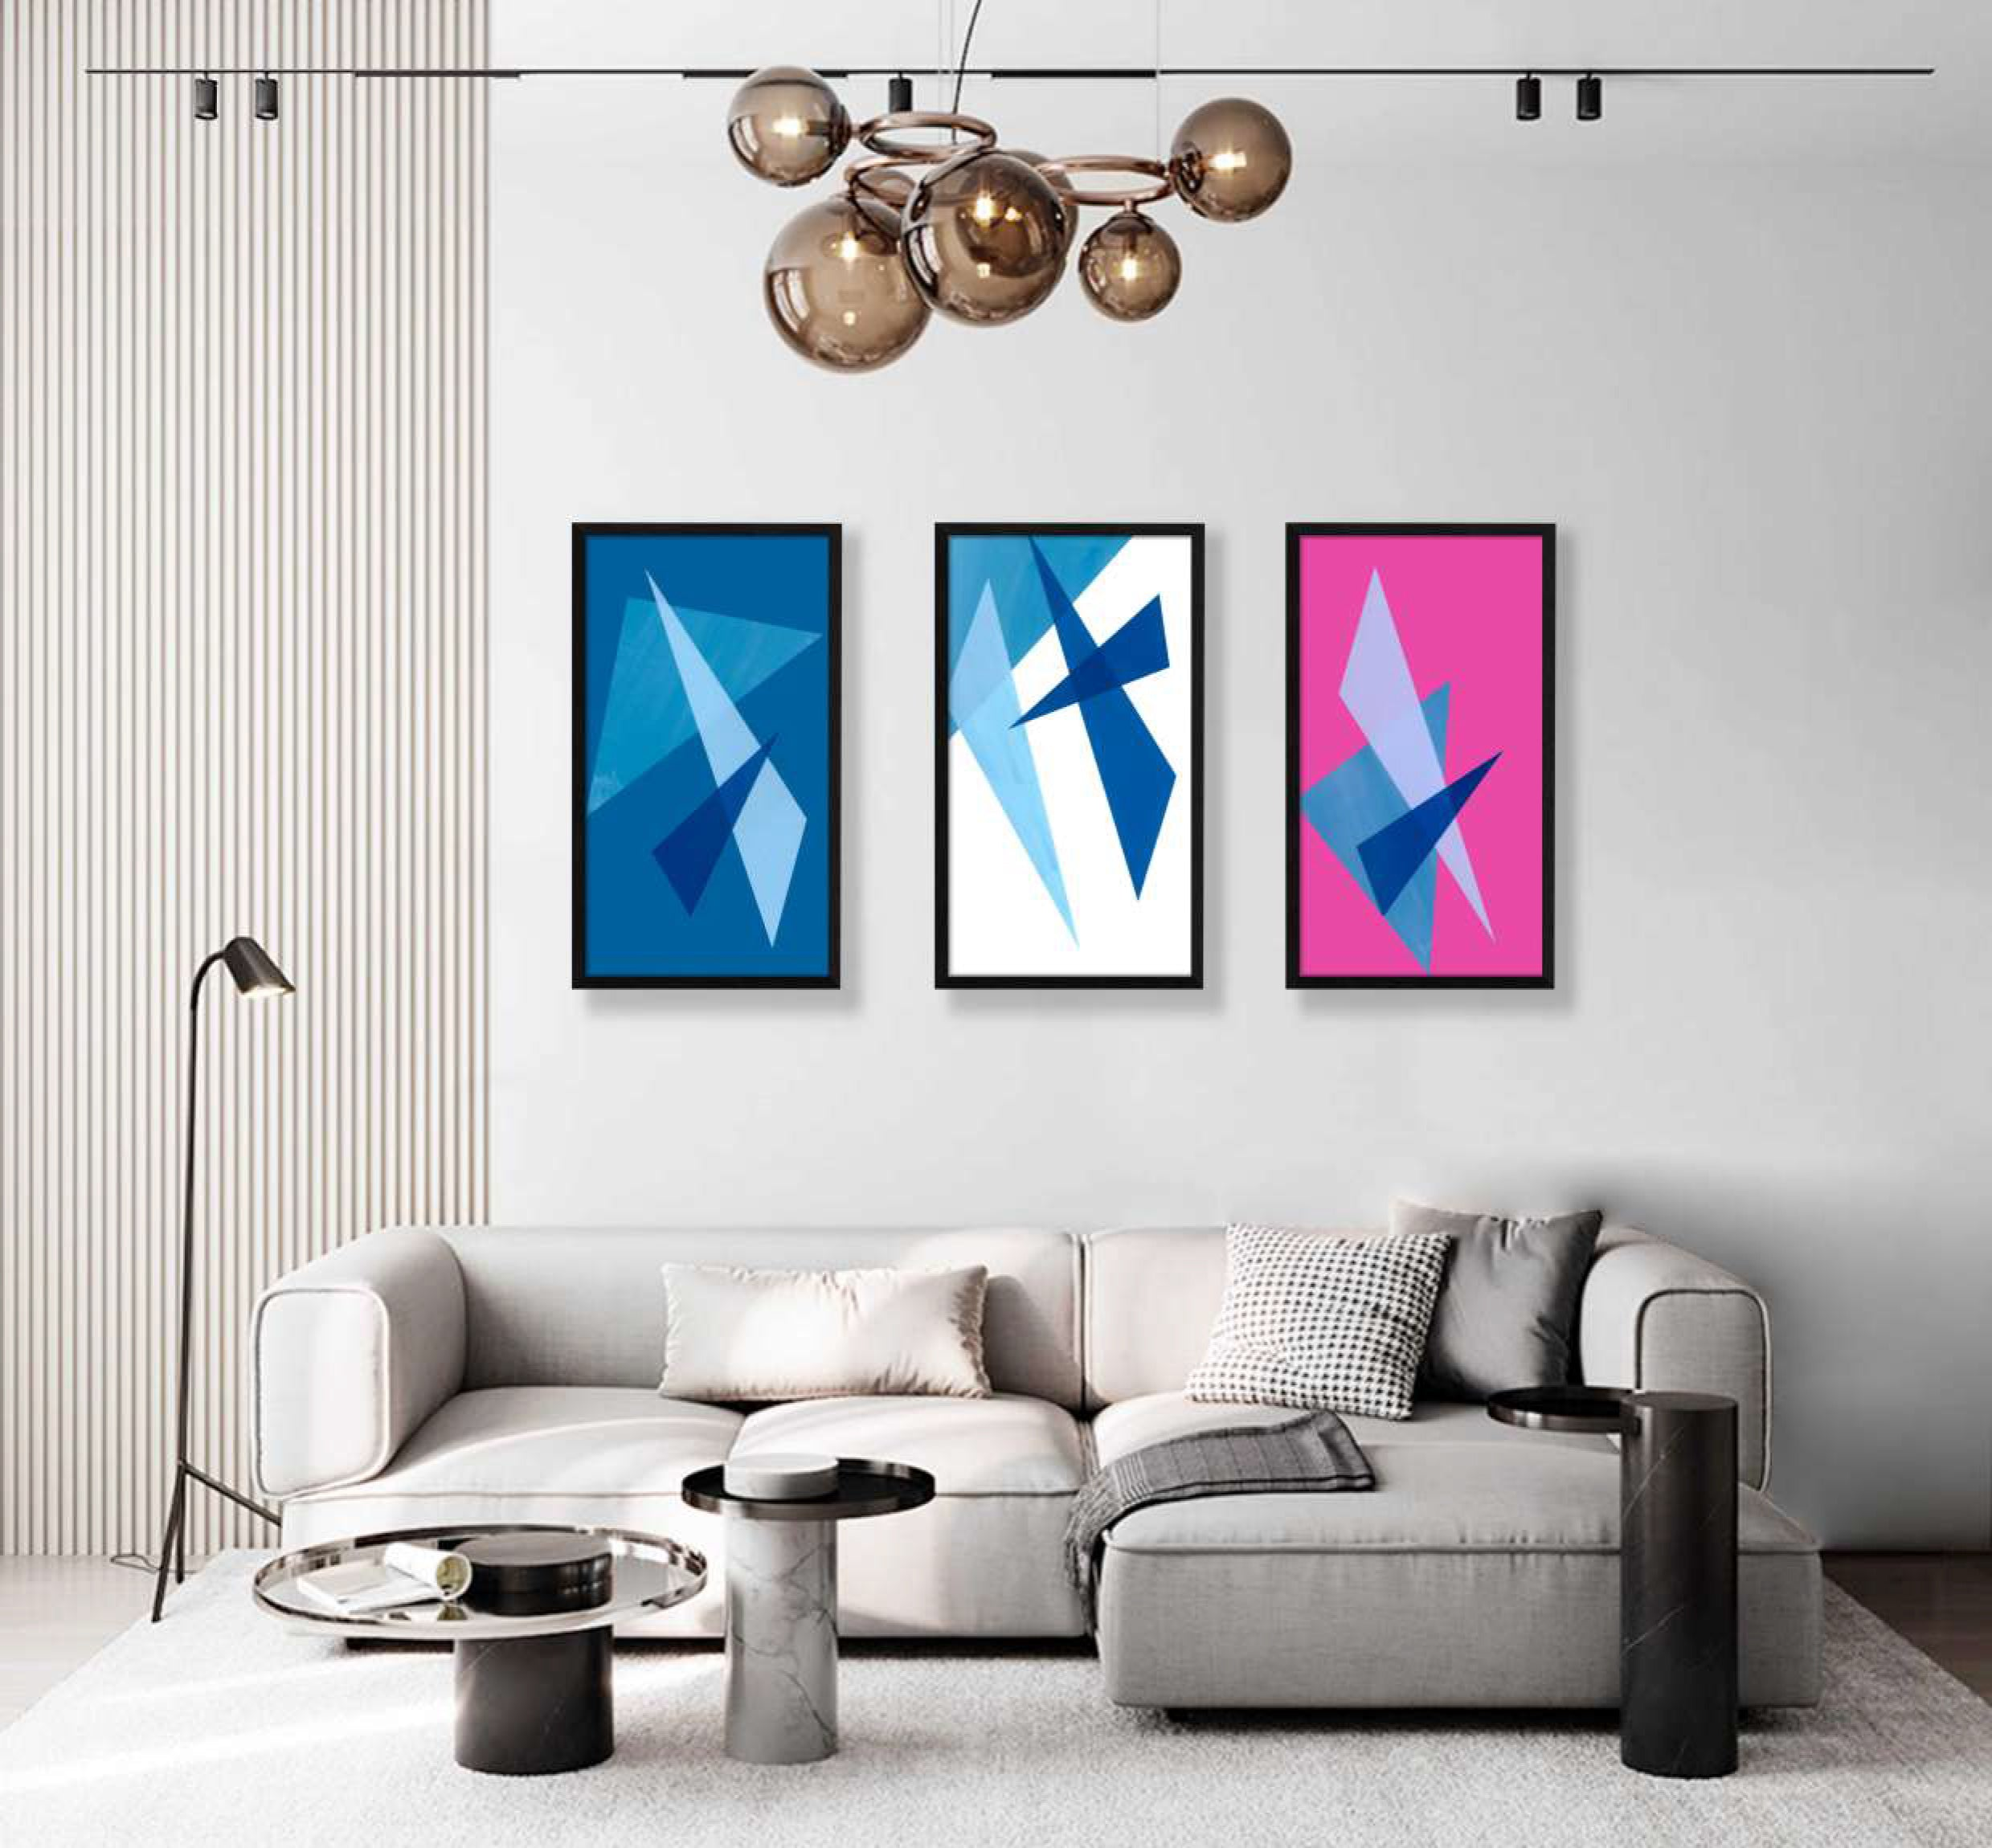 variety collection of framed geometric shaped print interior display